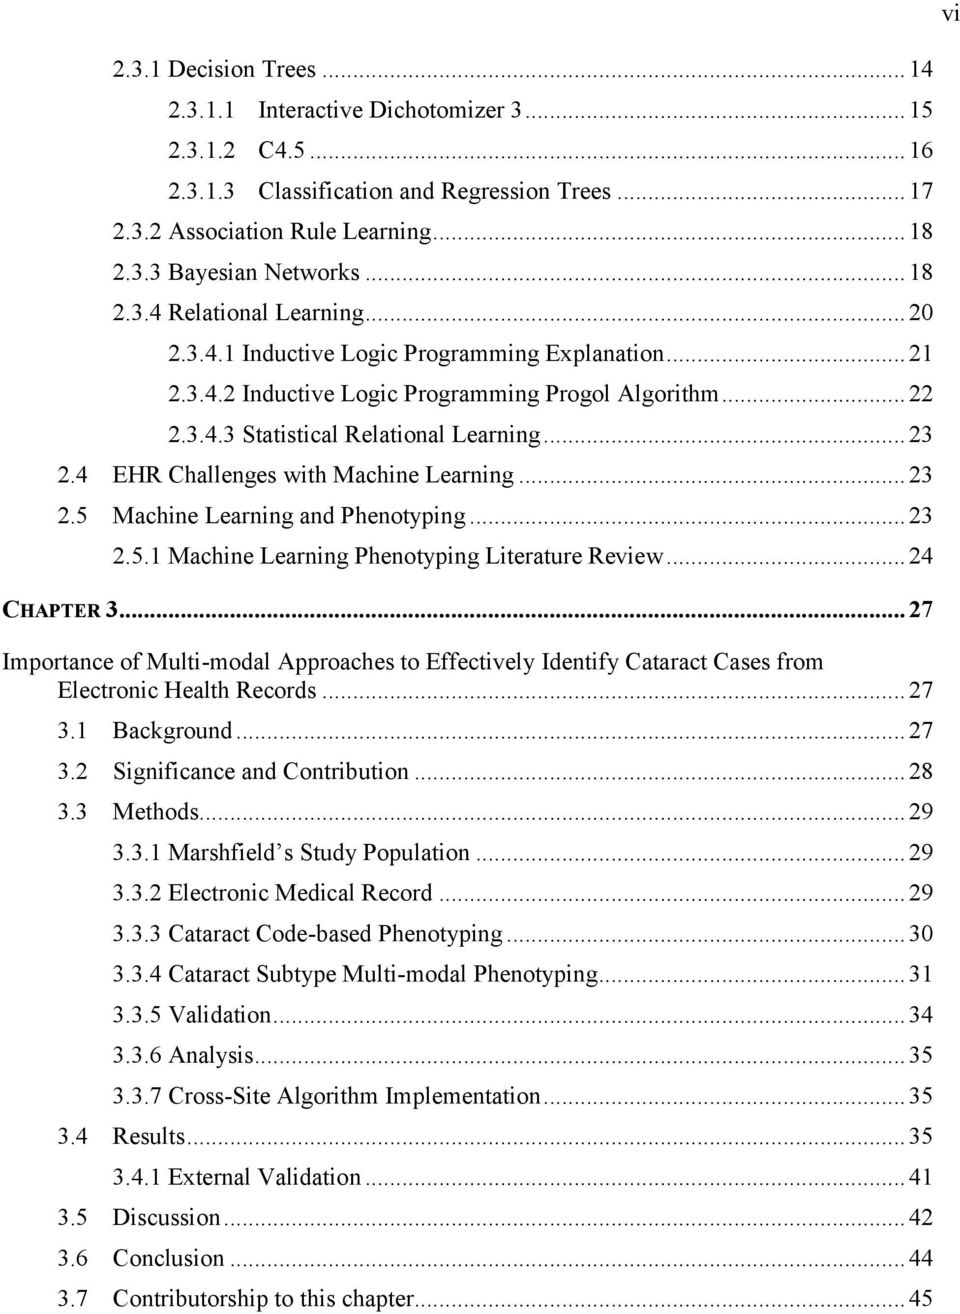 4 EHR Challenges with Machine Learning... 23 2.5 Machine Learning and Phenotyping... 23 2.5.1 Machine Learning Phenotyping Literature Review... 24 CHAPTER 3.